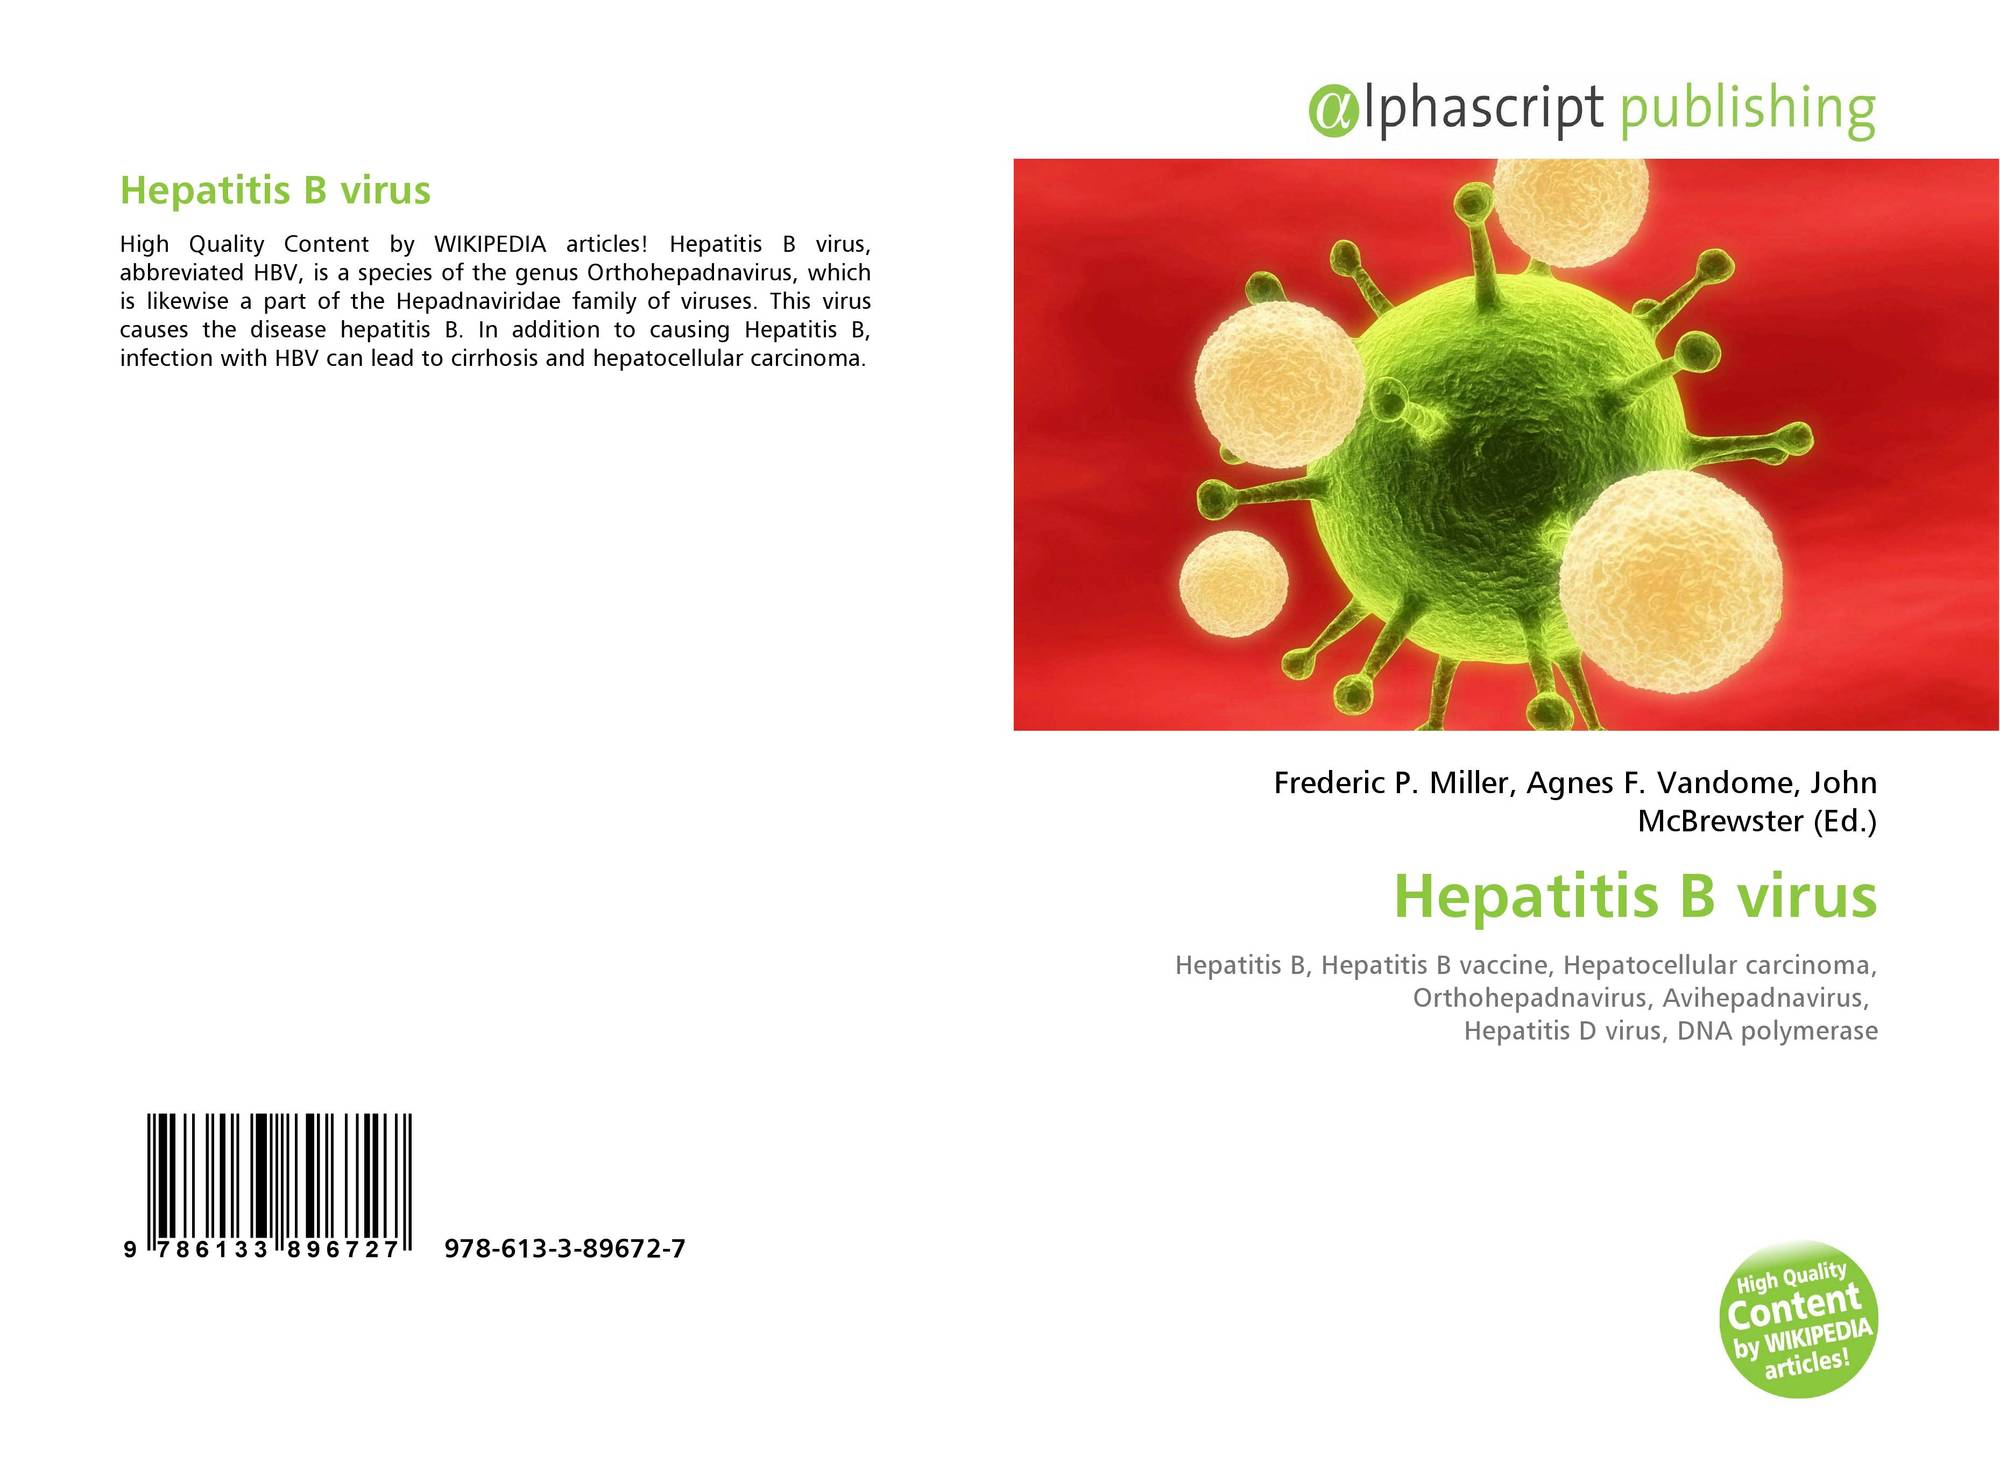 a study of the hepatitis b virus Practiceguideline aasld guidelines for treatment of chronic hepatitis b norah a terrault,1 natalie h bzowej,2 kyong-mi chang,3 jessica p hwang,4 maureen m jonas,5 and m hassan murad6 objectives and guiding principles guiding principles.